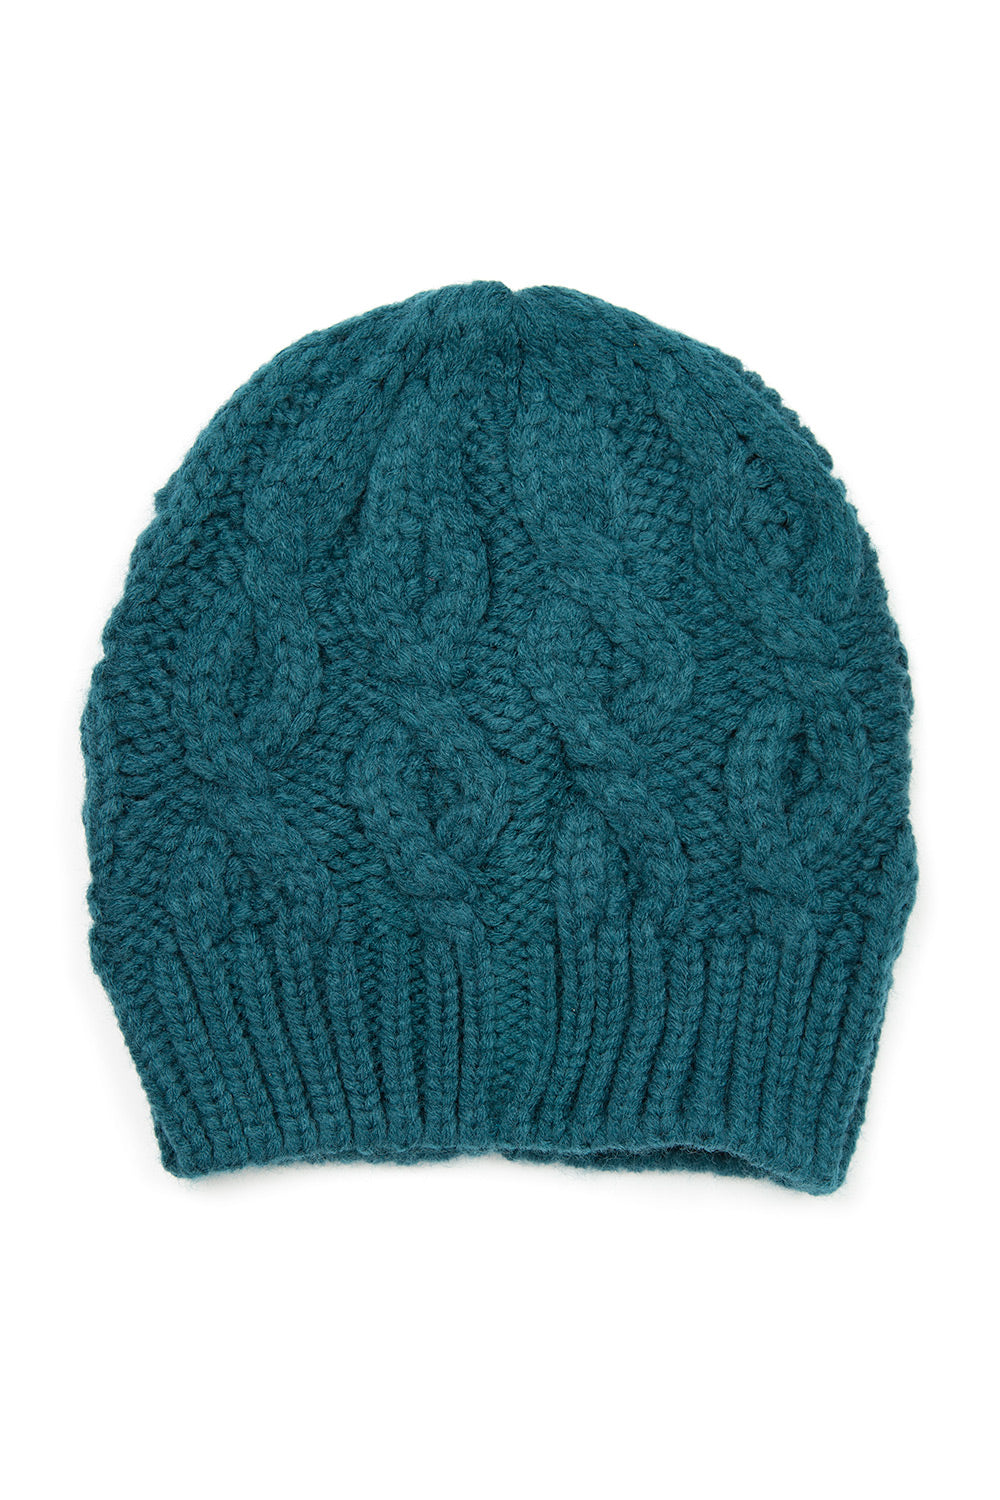 Type 3 Toasty Teal Hat